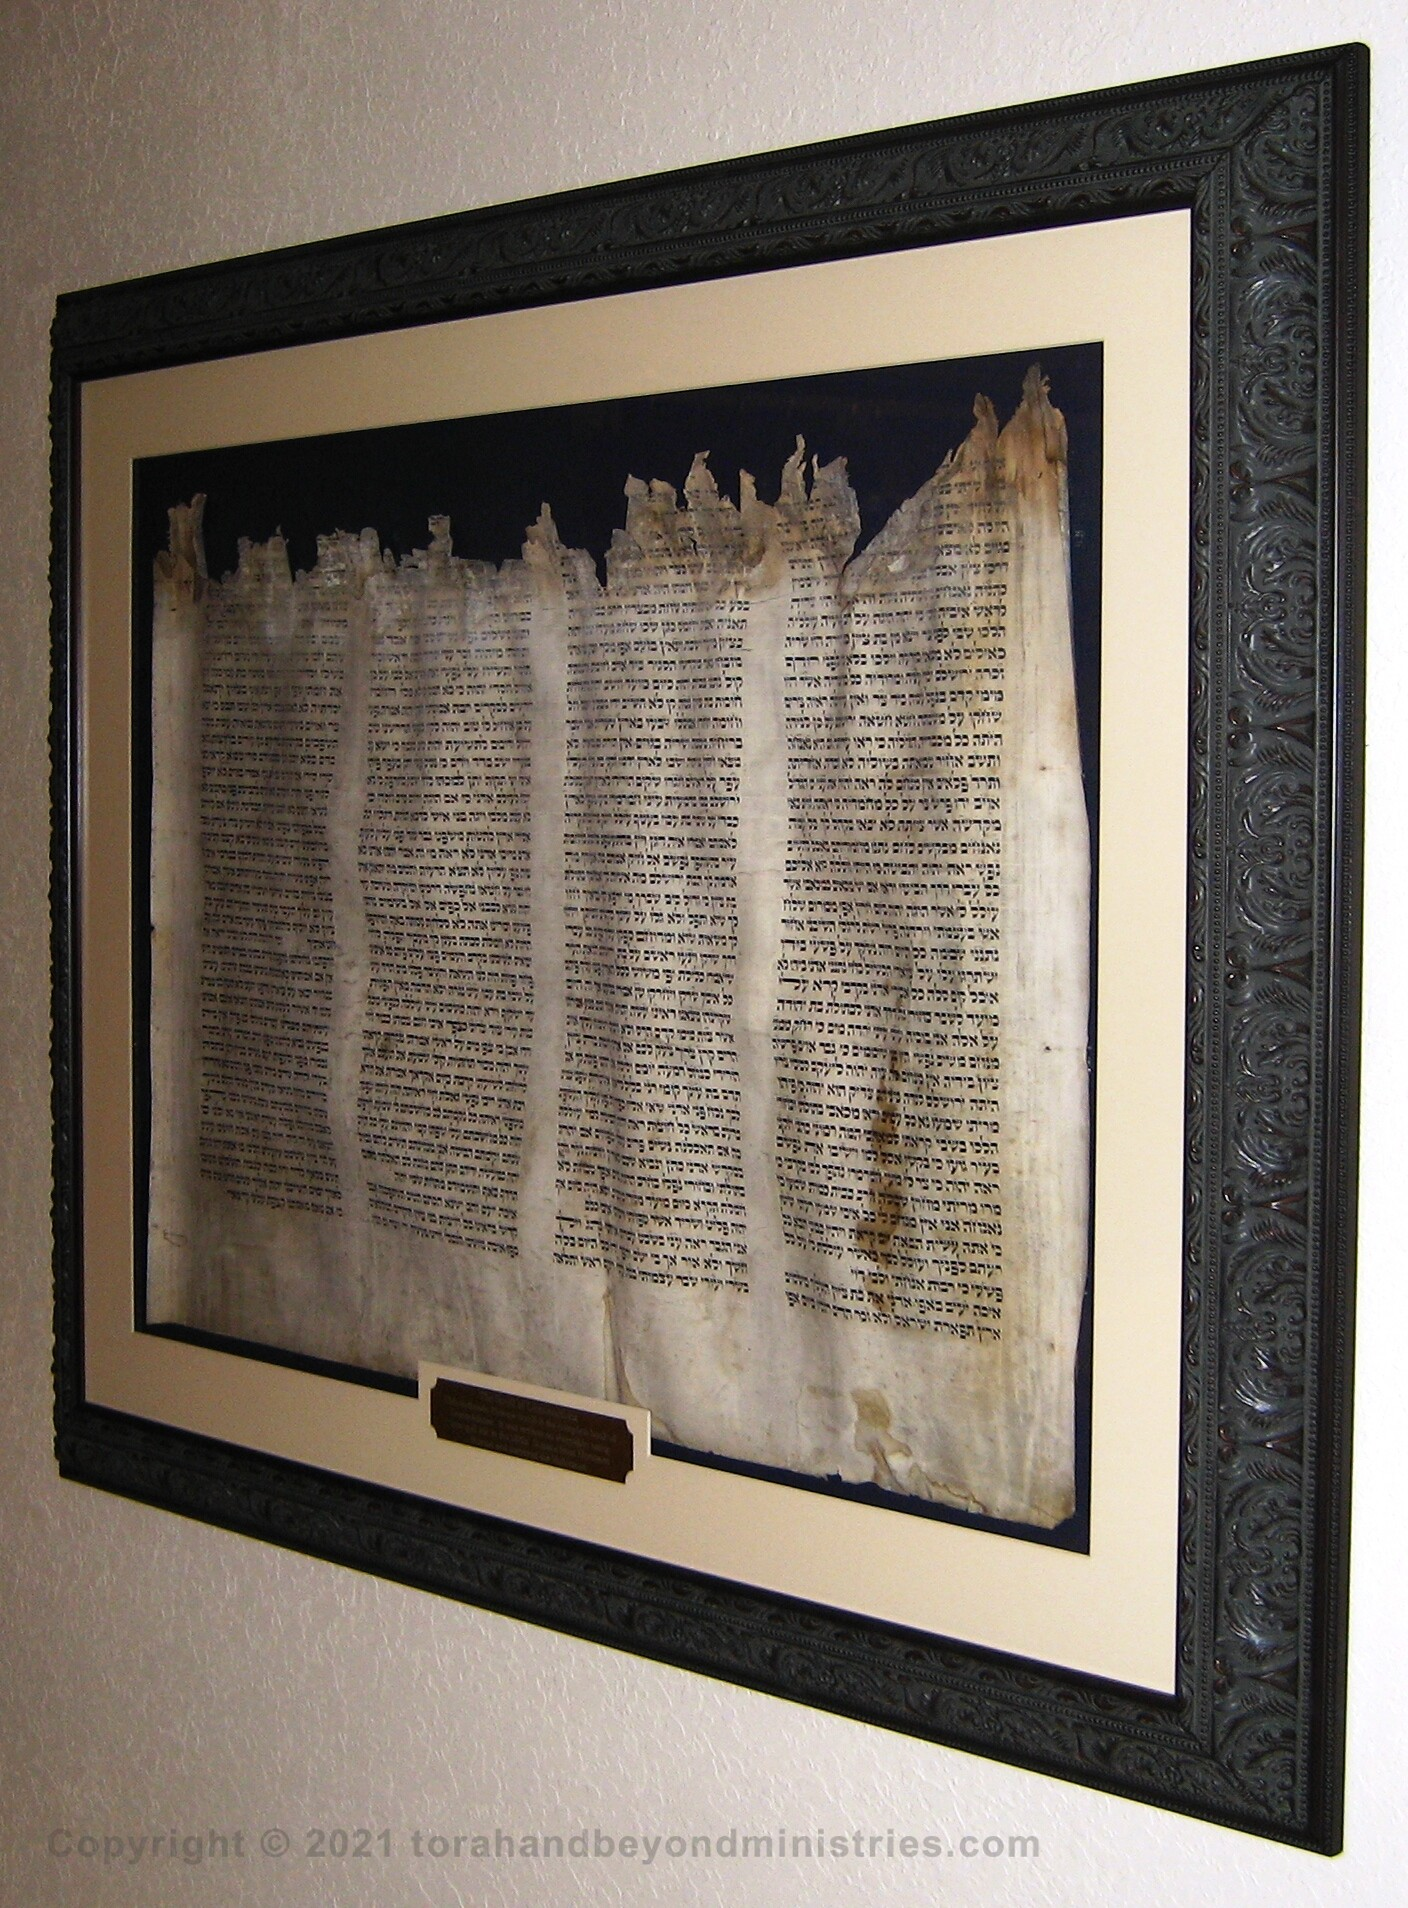 Complete Scroll of Lamentations damaged in the Holocaust